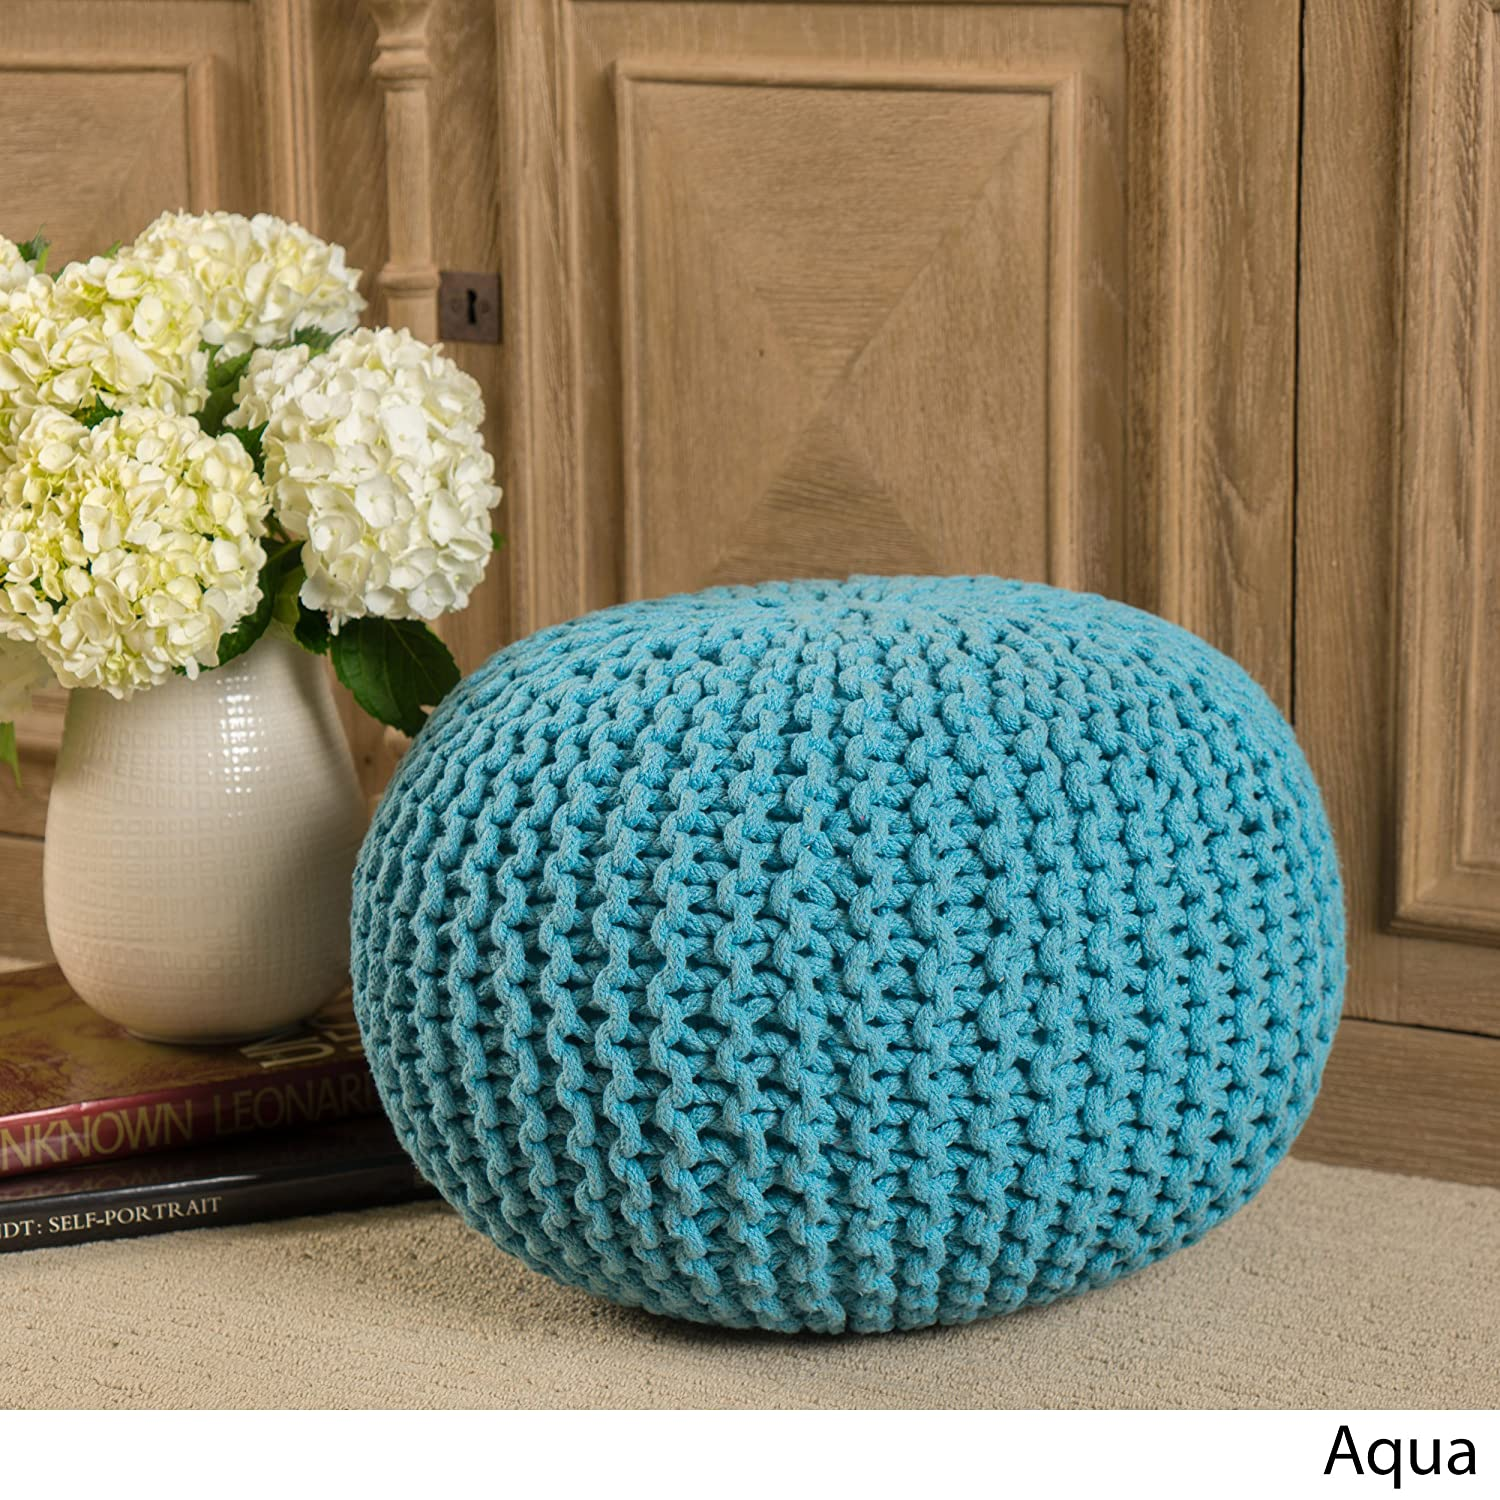 Poona Hand Knitted Artisan Round Pouf (Aqua) GDFStudio